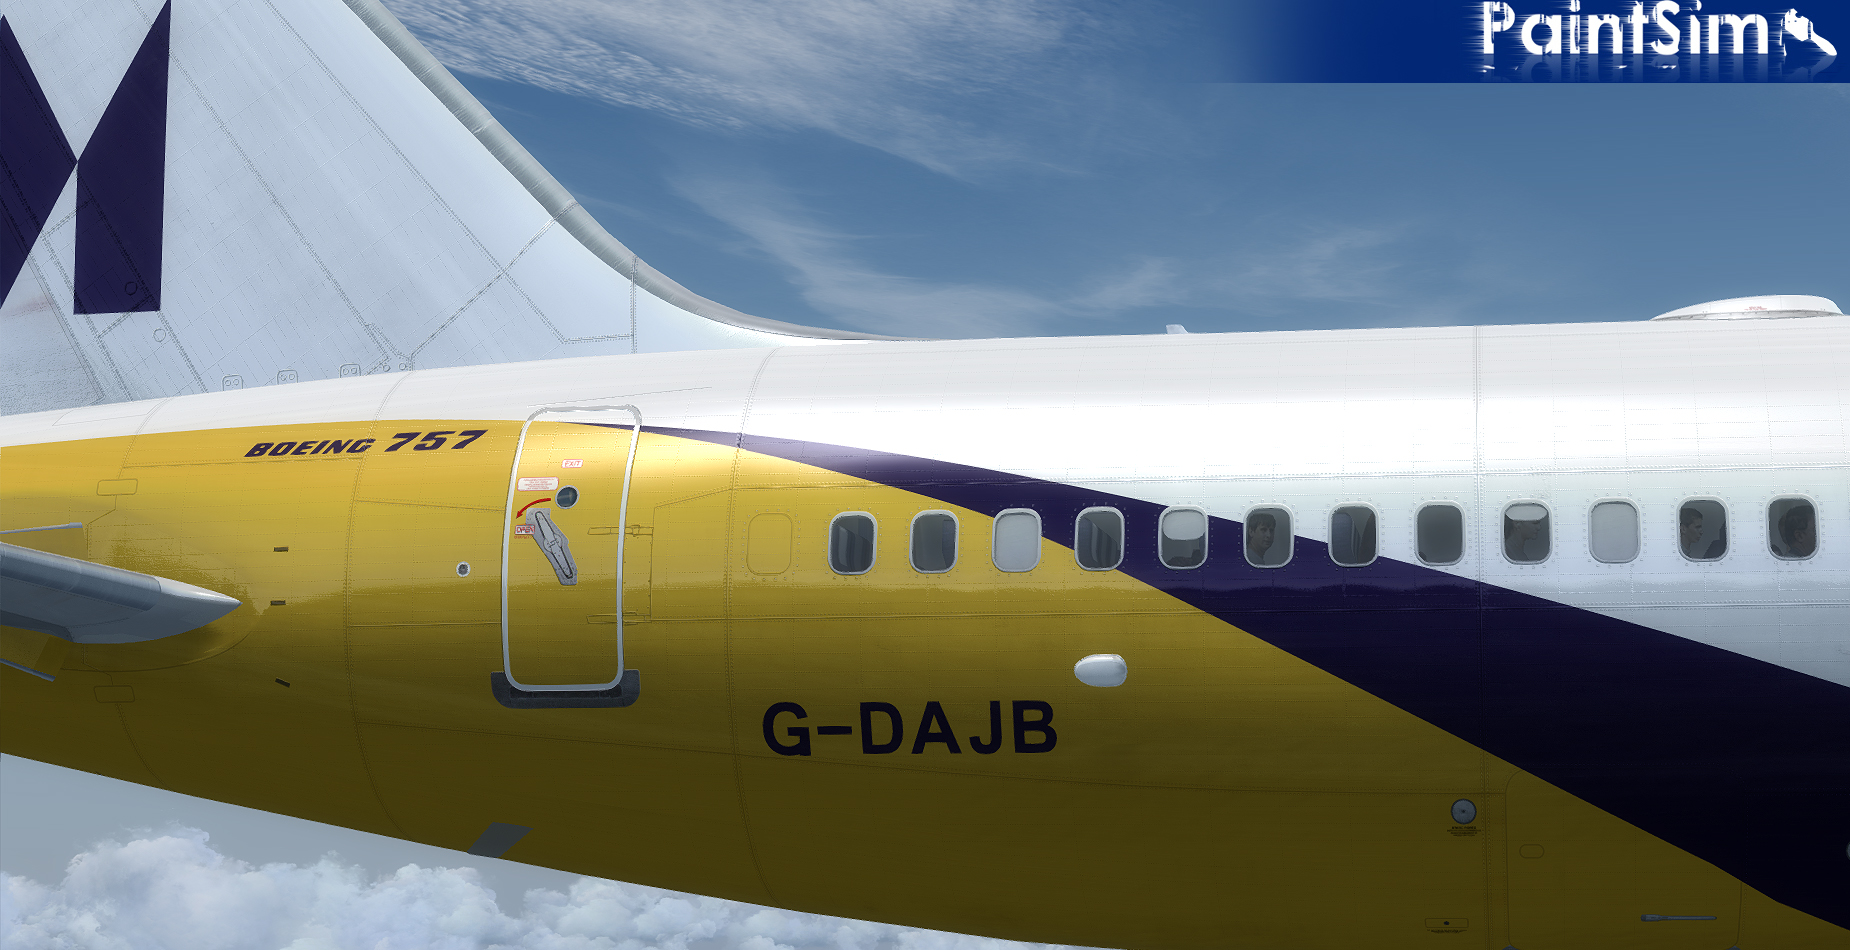 PAINTSIM - UHD TEXTURE PACK 5 FOR CAPTAIN SIM BOEING 757-200 III P3D V4